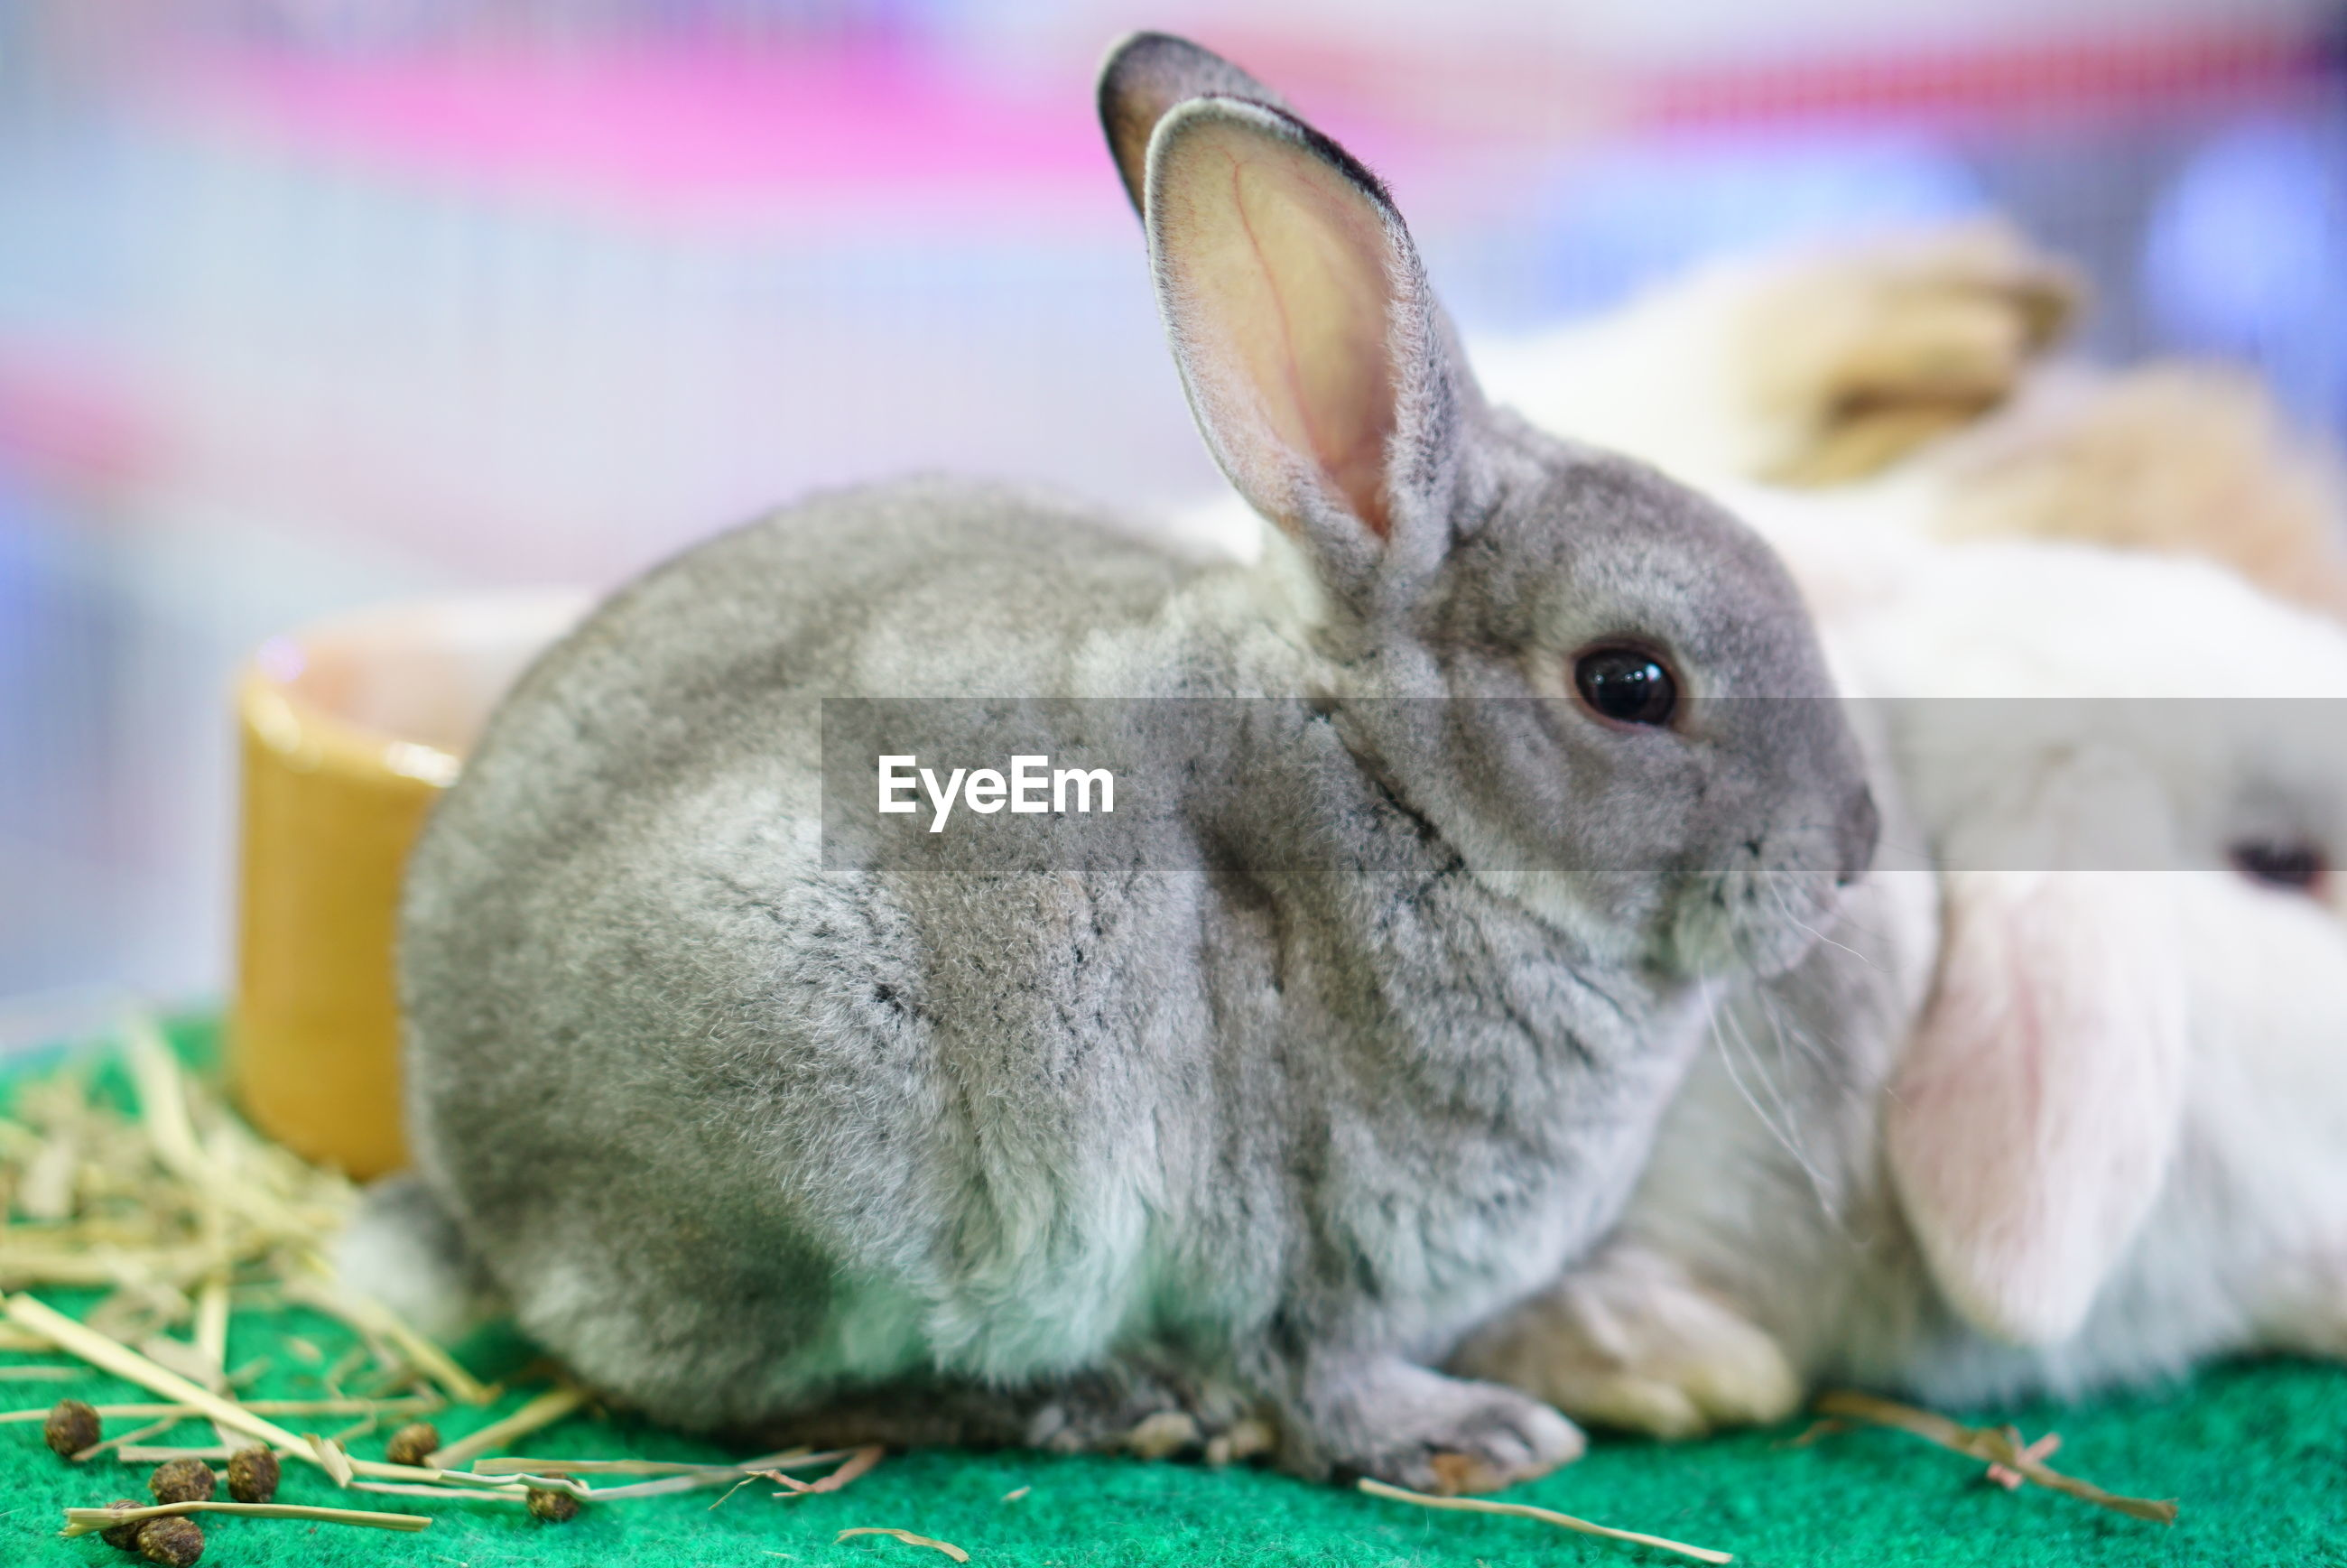 CLOSE-UP OF RABBIT IN INDOORS